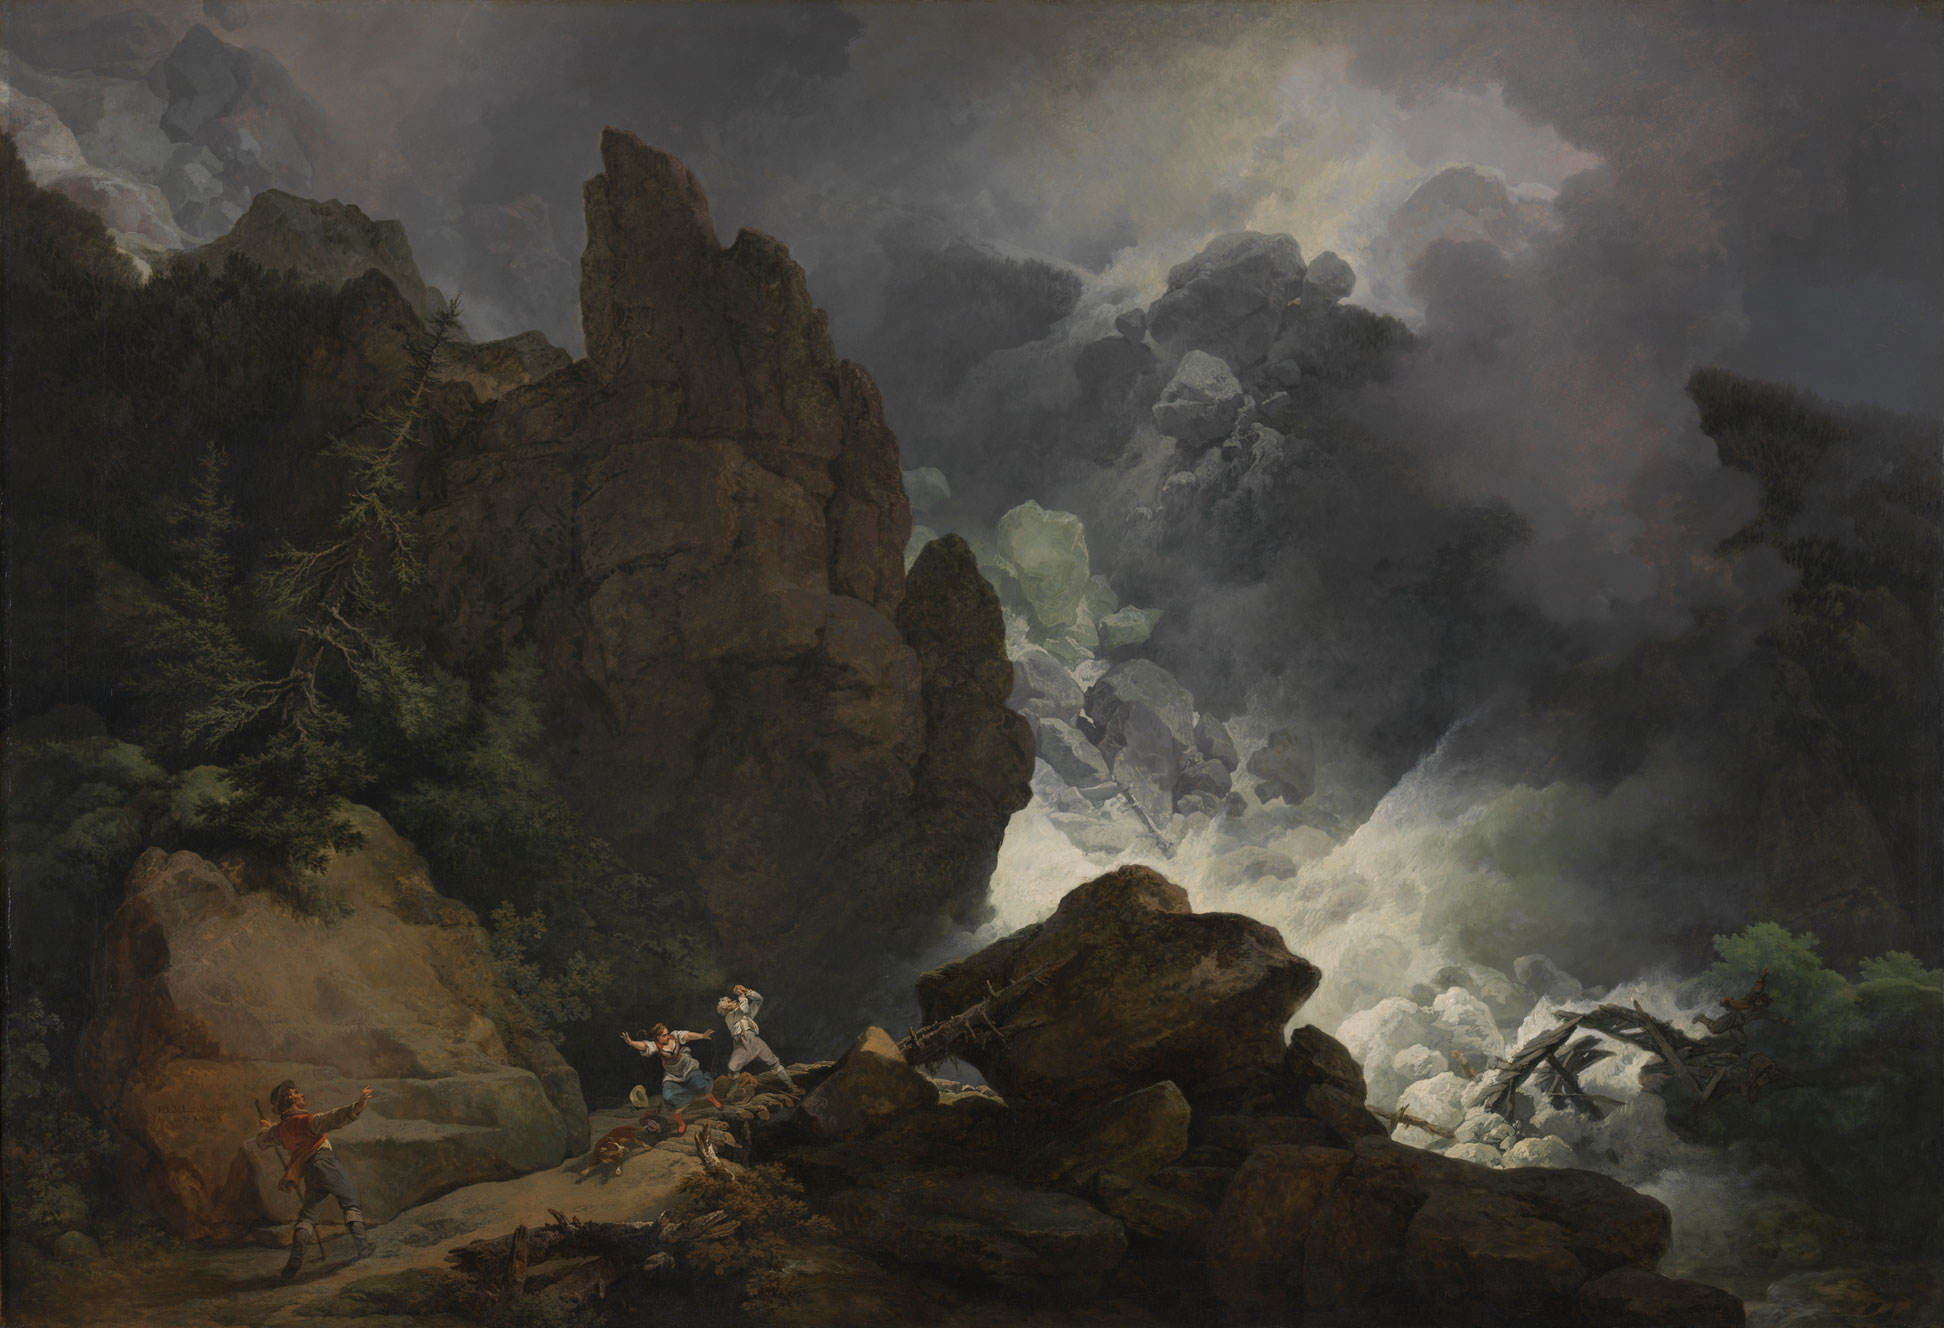 An Avalanche in the Alps, a sublime landscape painting by Philip James De Loutherbourg